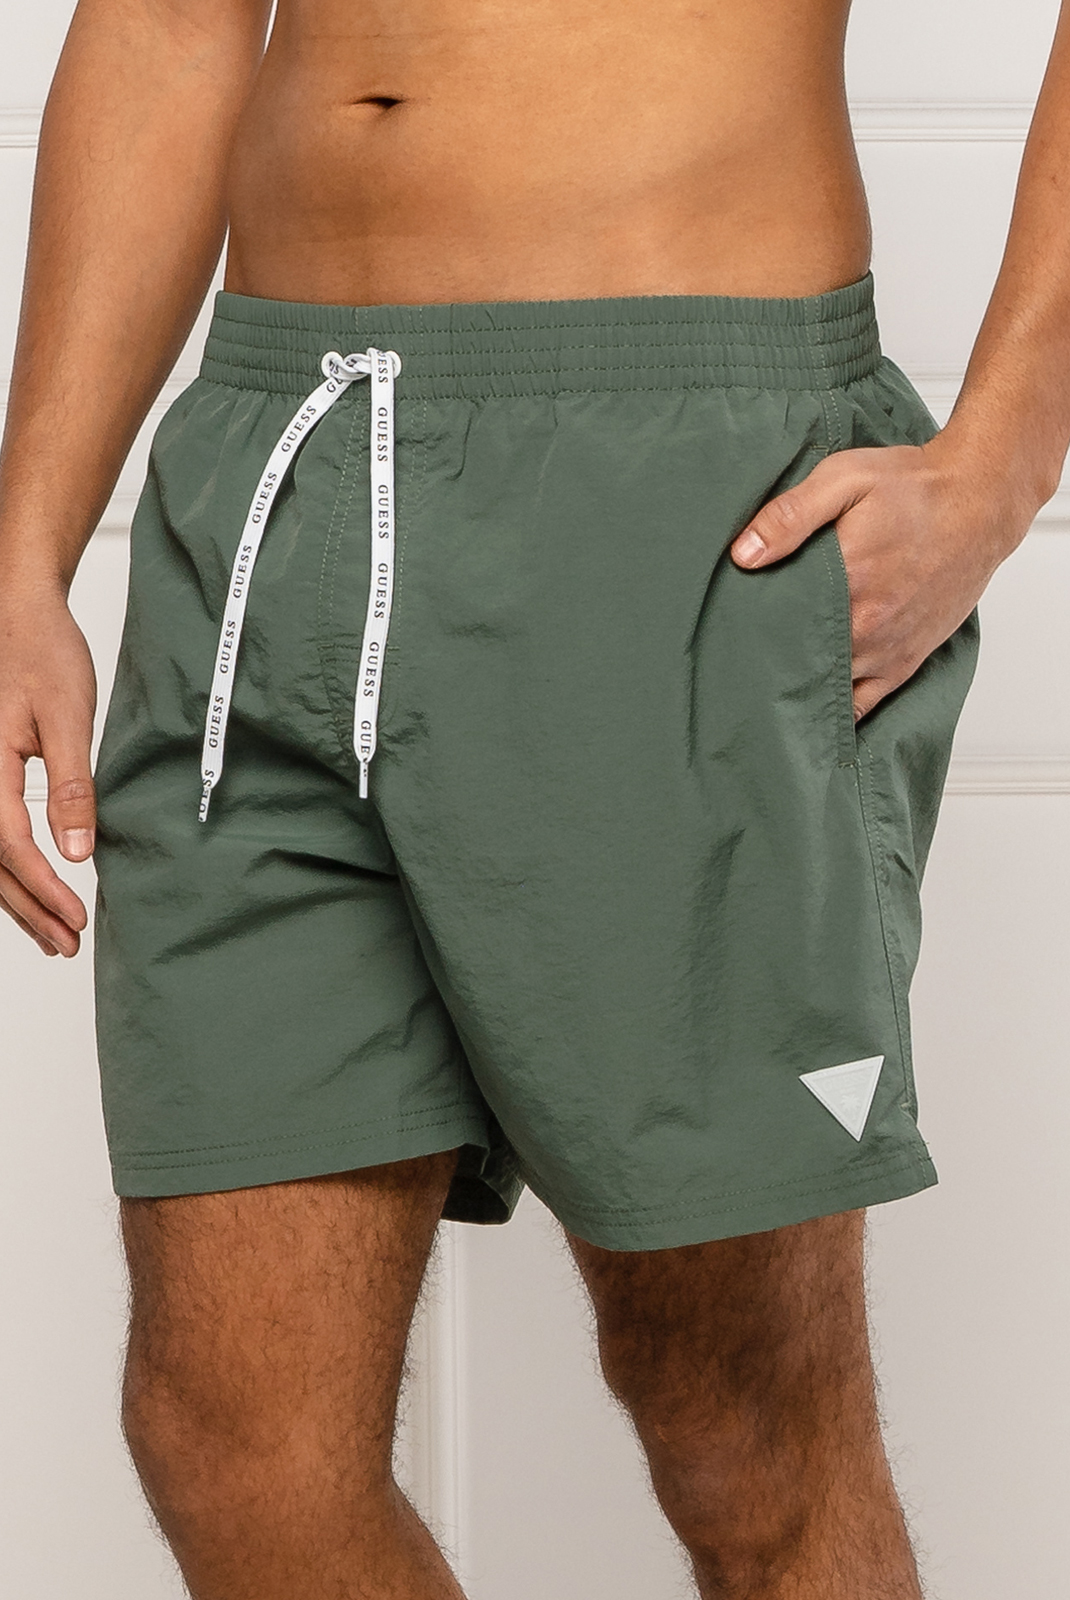 Shorts de bain  Guess jeans F02T01 TEL27 G896 ARMY OLIVE